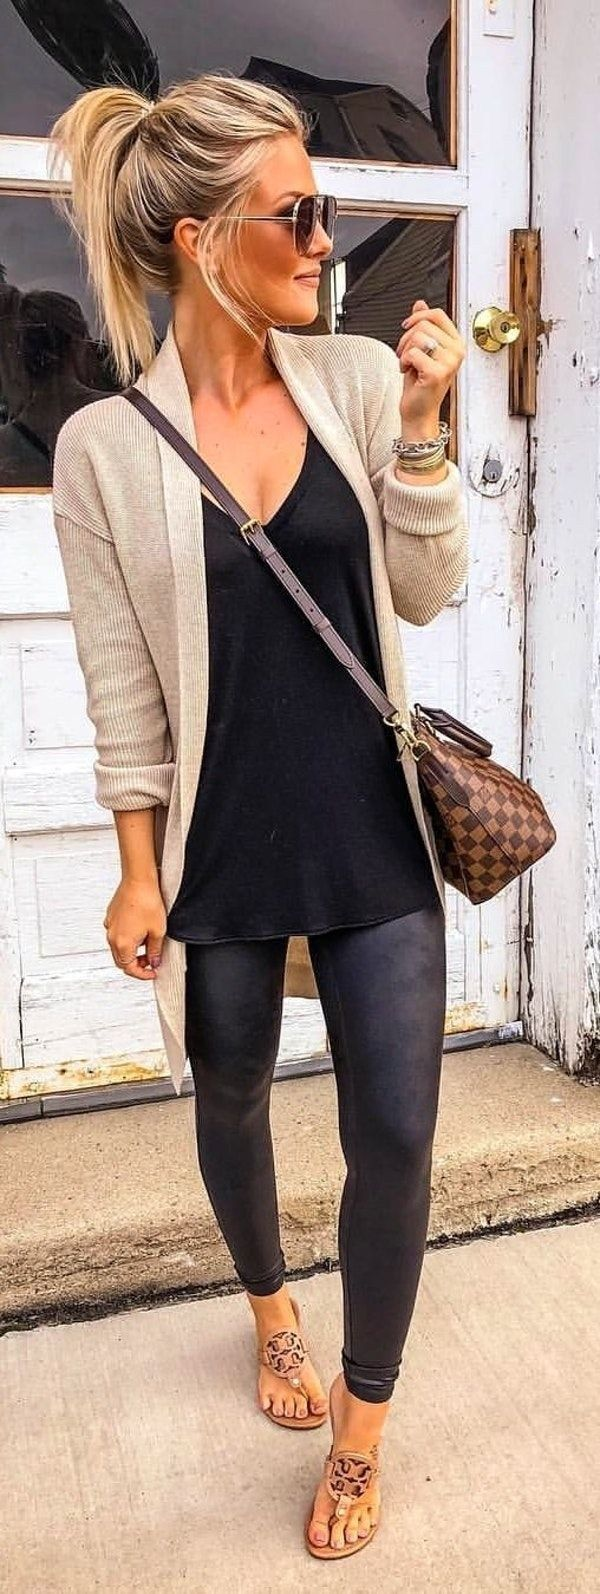 53 Fabulous Winter Outfit For Women 40 Years